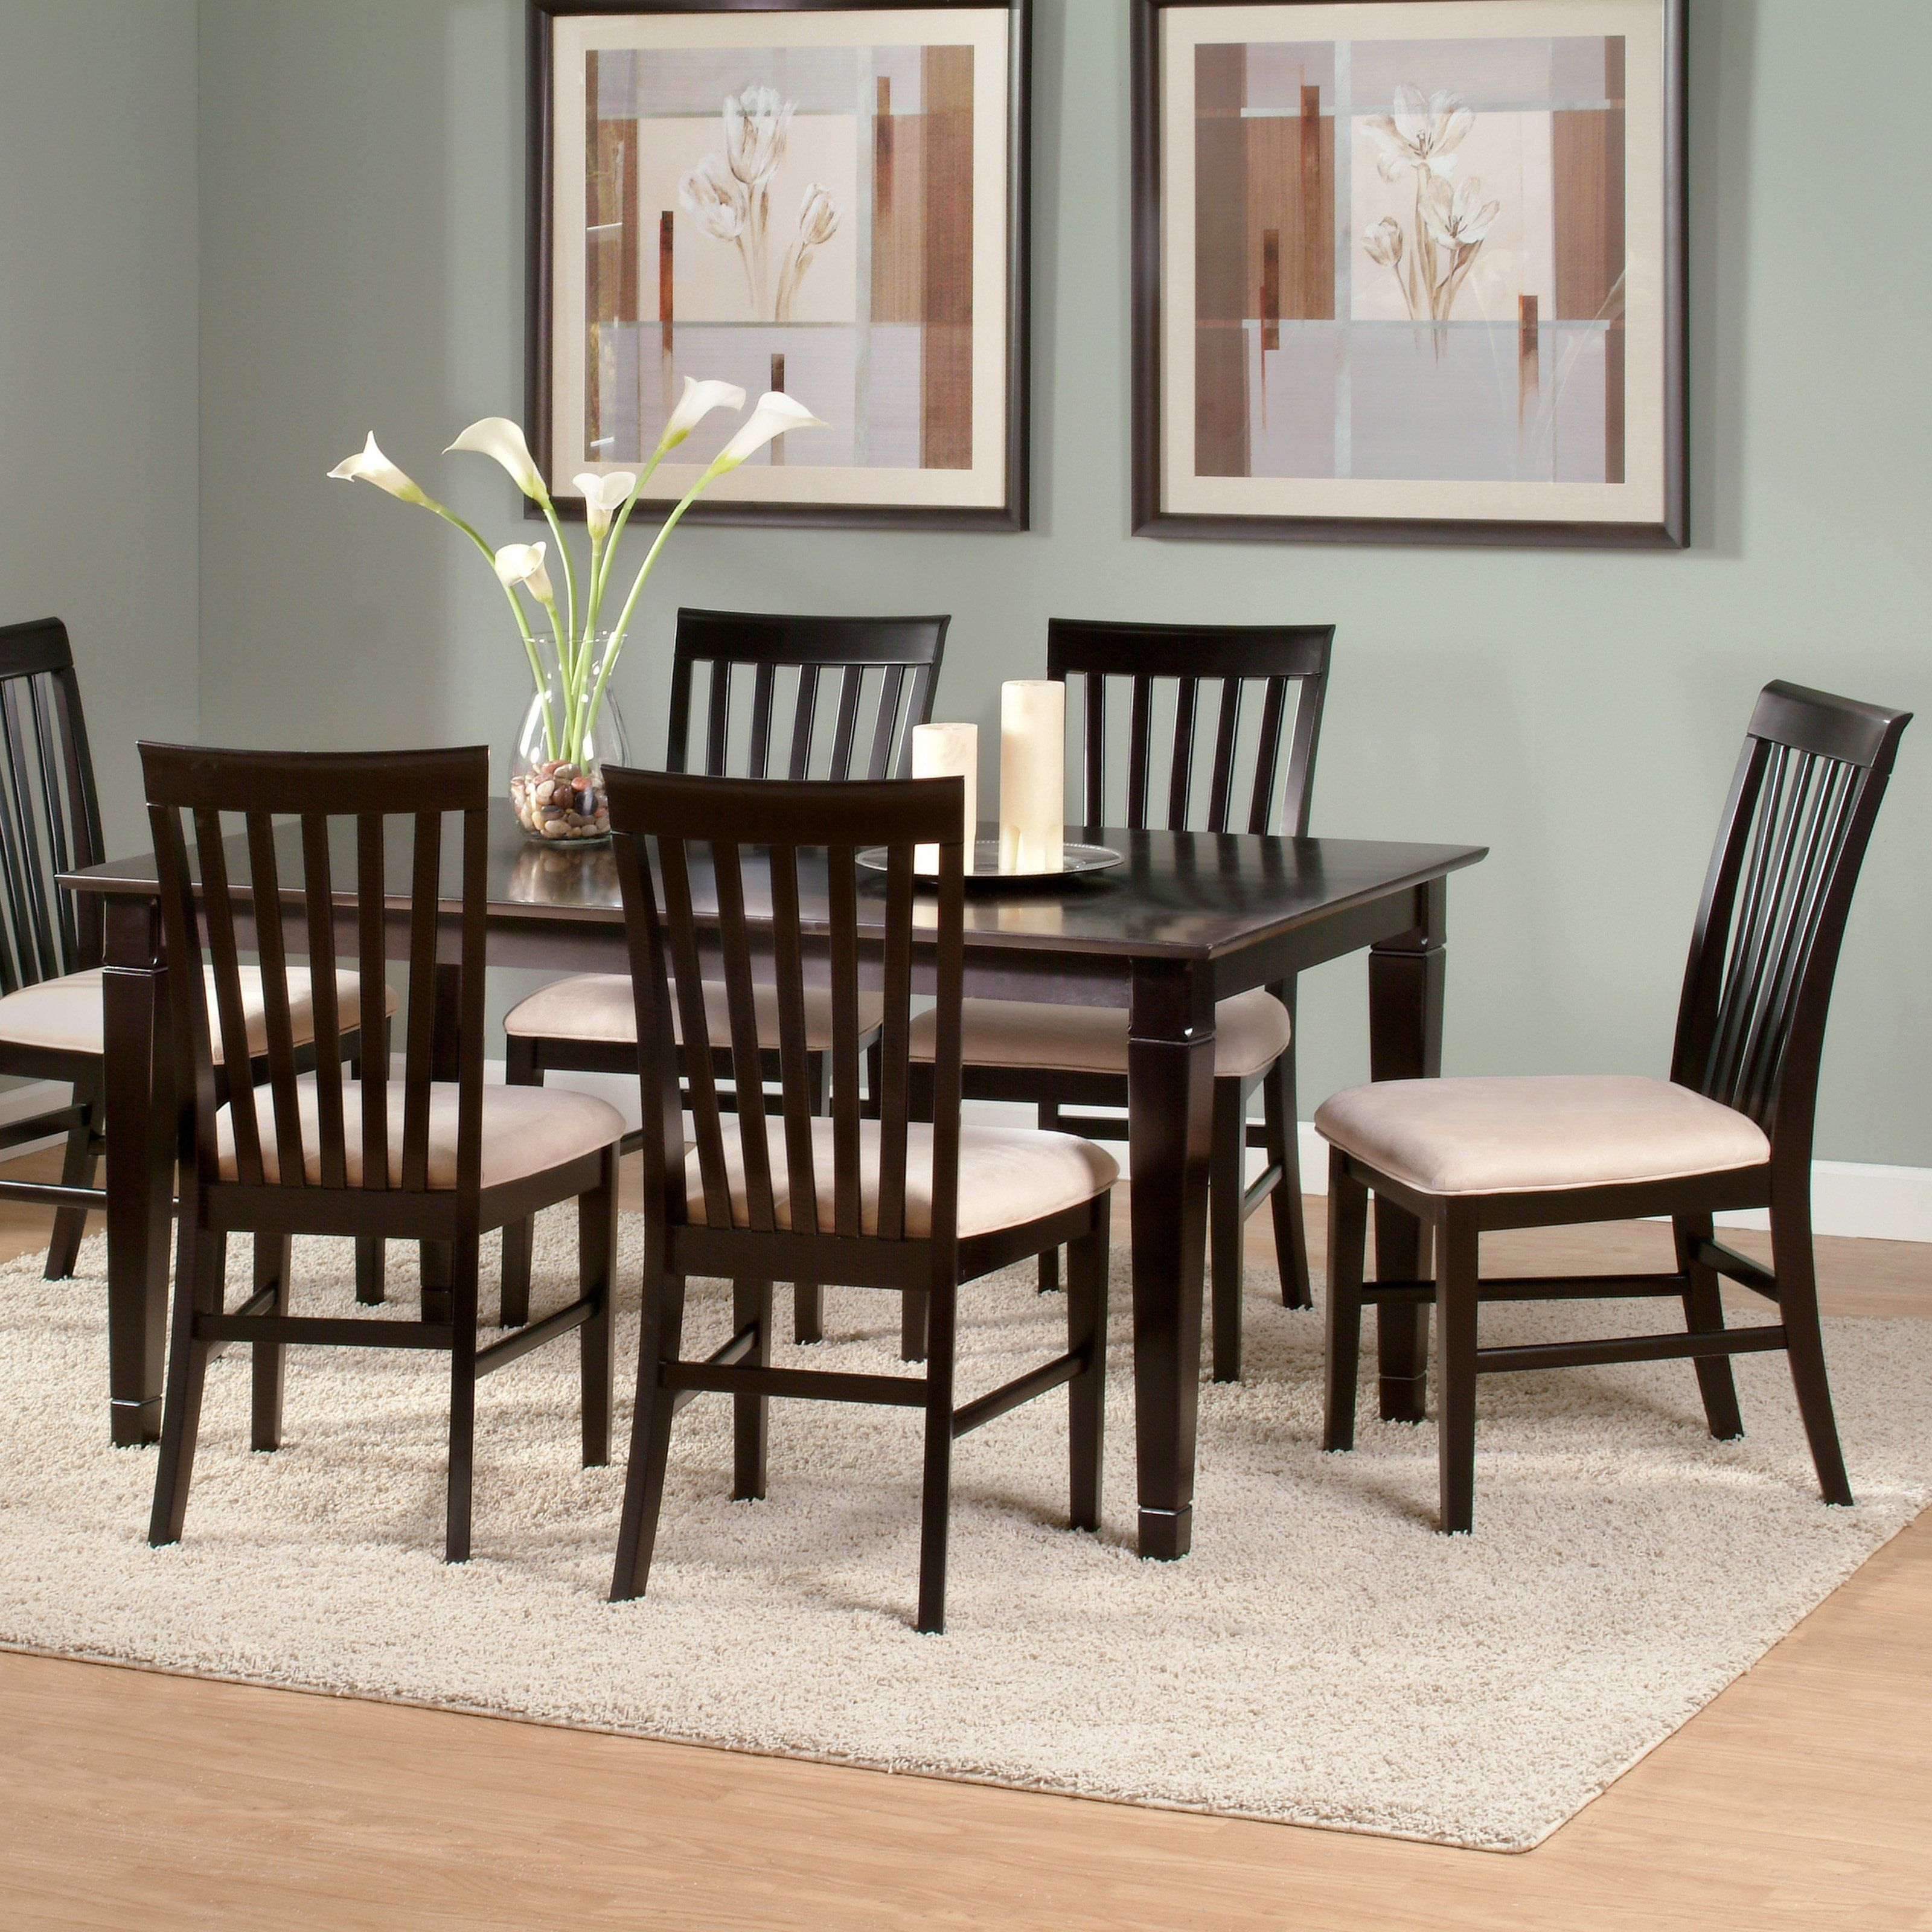 Broyhill Affinity Dining Room Set Deco 7Piece Dining Set $105599  For The Home  Pinterest